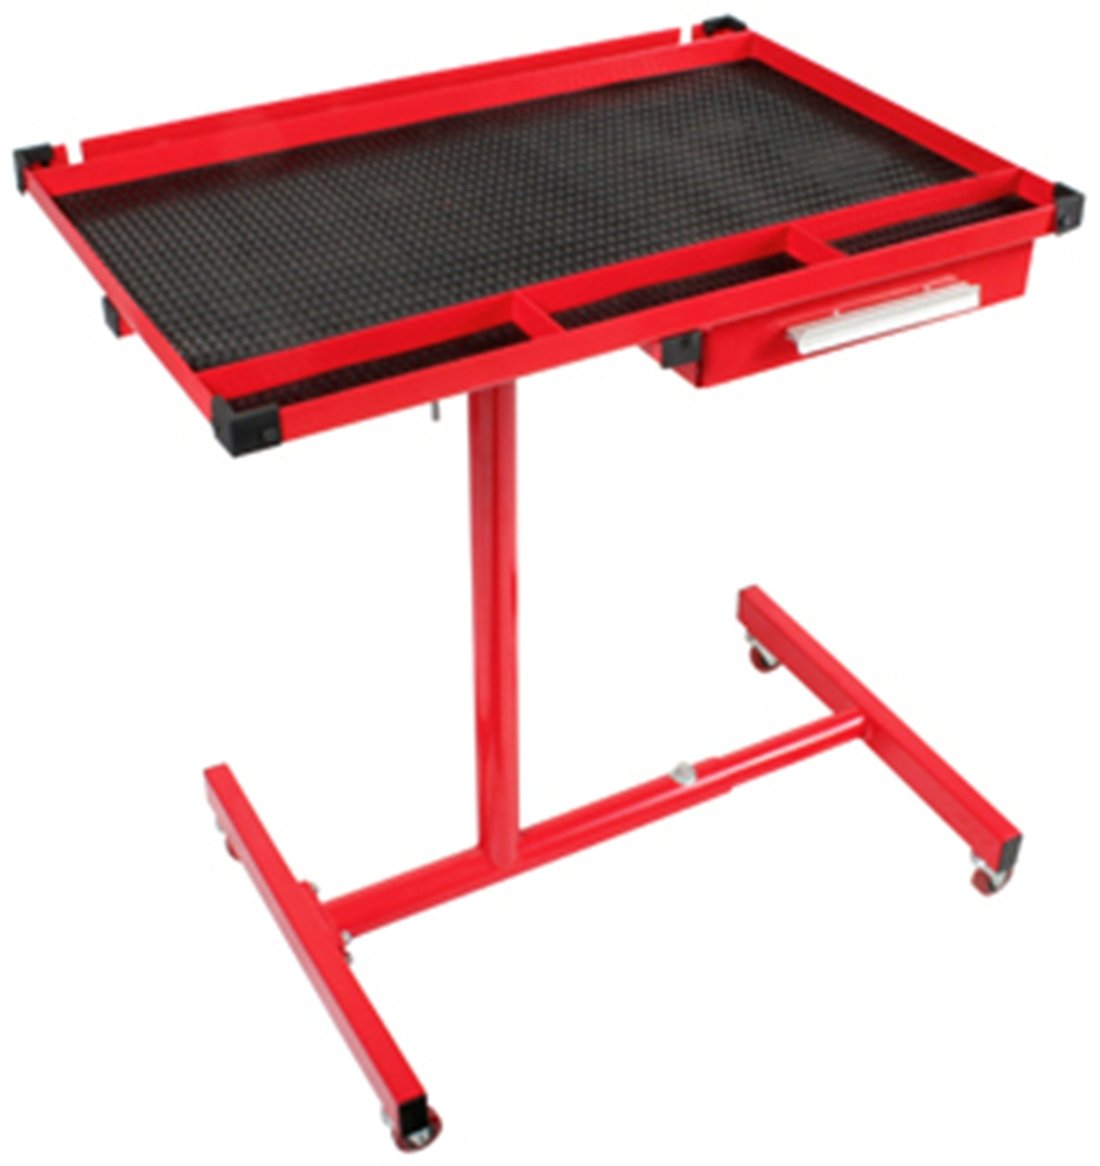 Sunex 8019 Heavy Duty Adjustable Work Table with Drawer by Sunex Tools